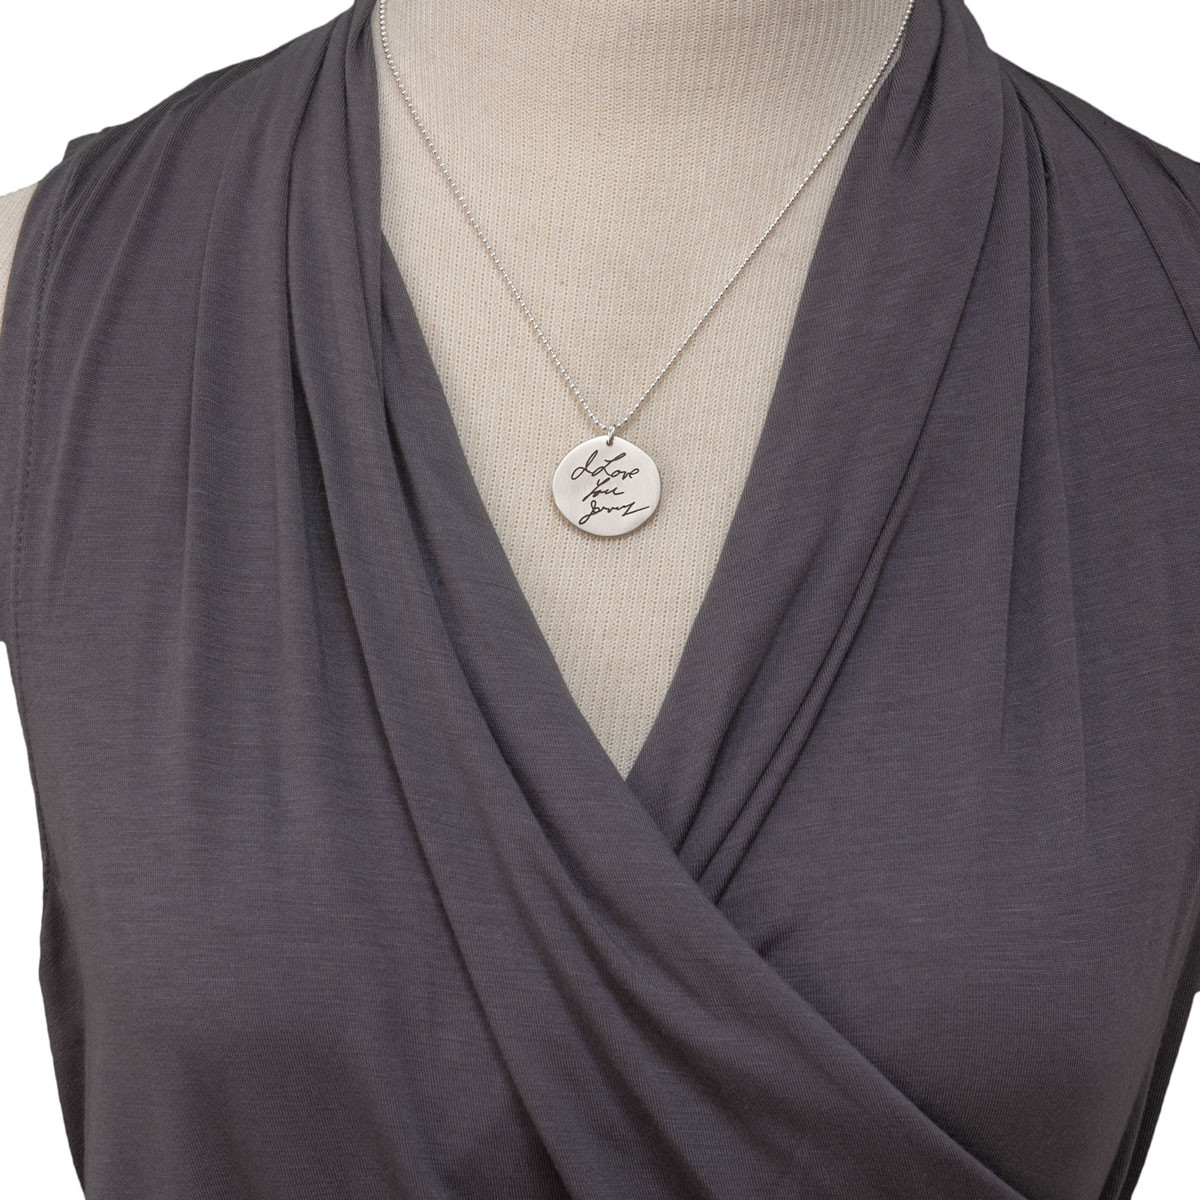 Memorial handwriting jewelry necklace in silver, shown on a model